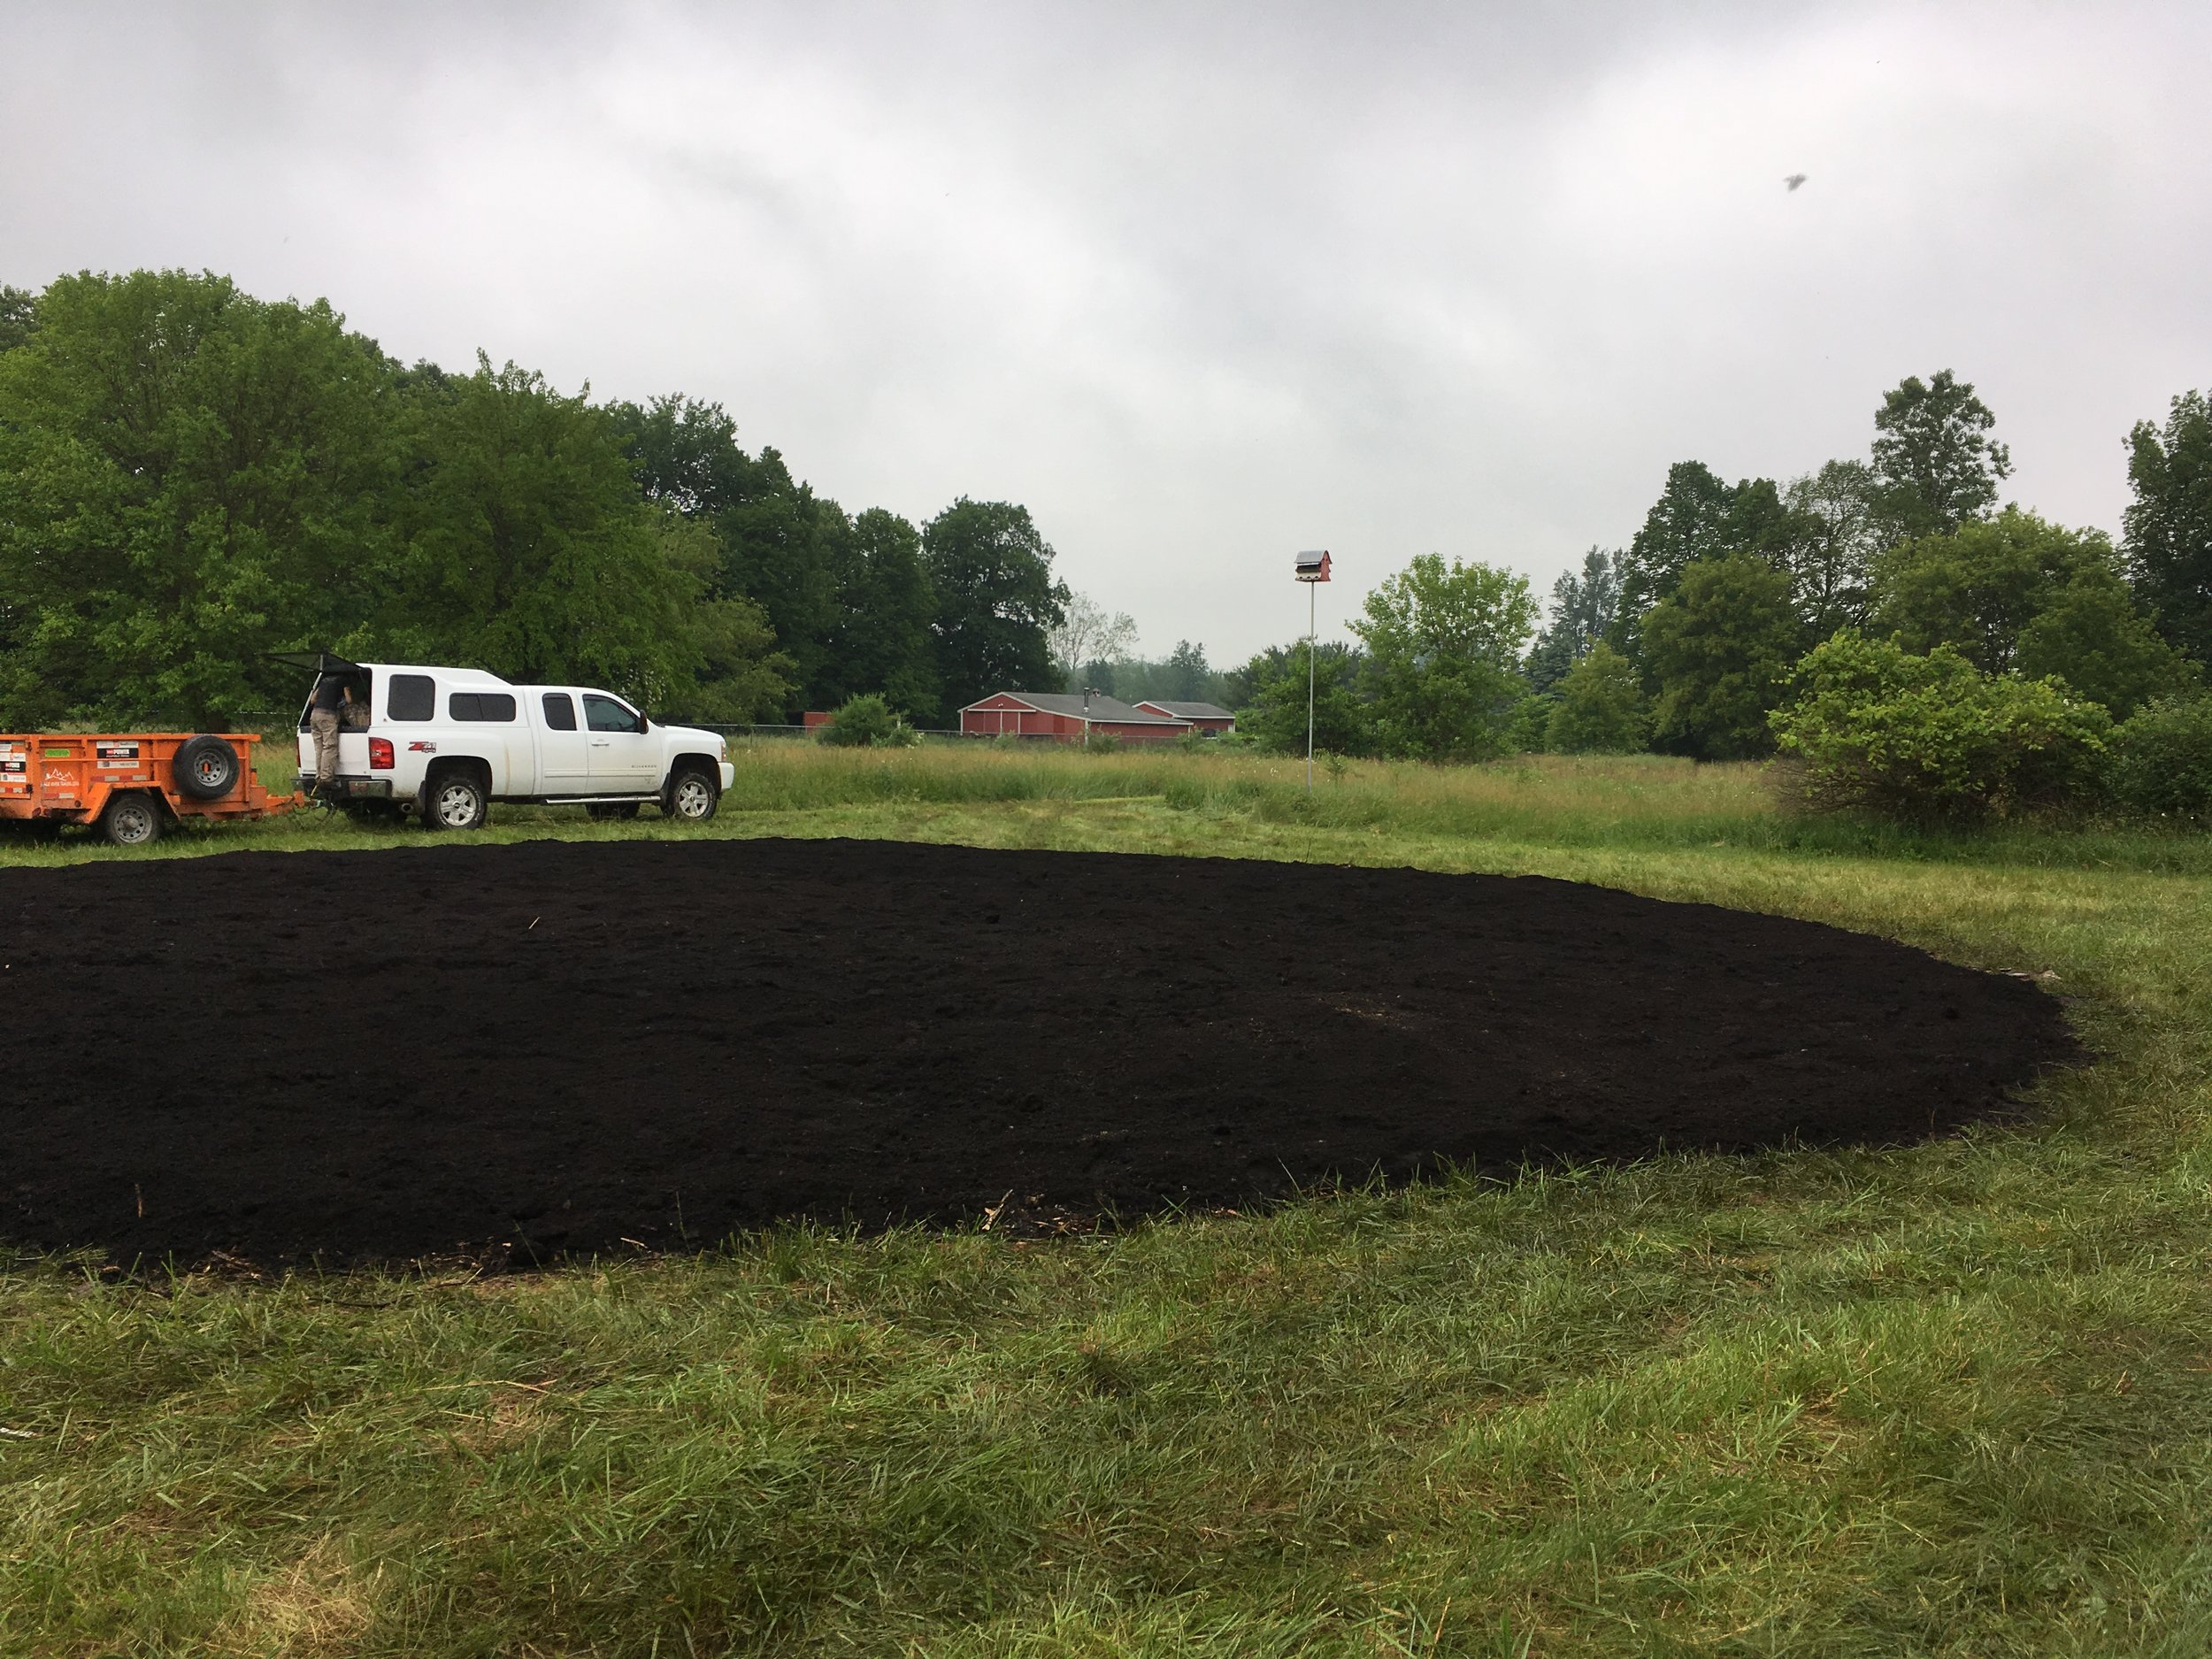 Layer 3 - compost